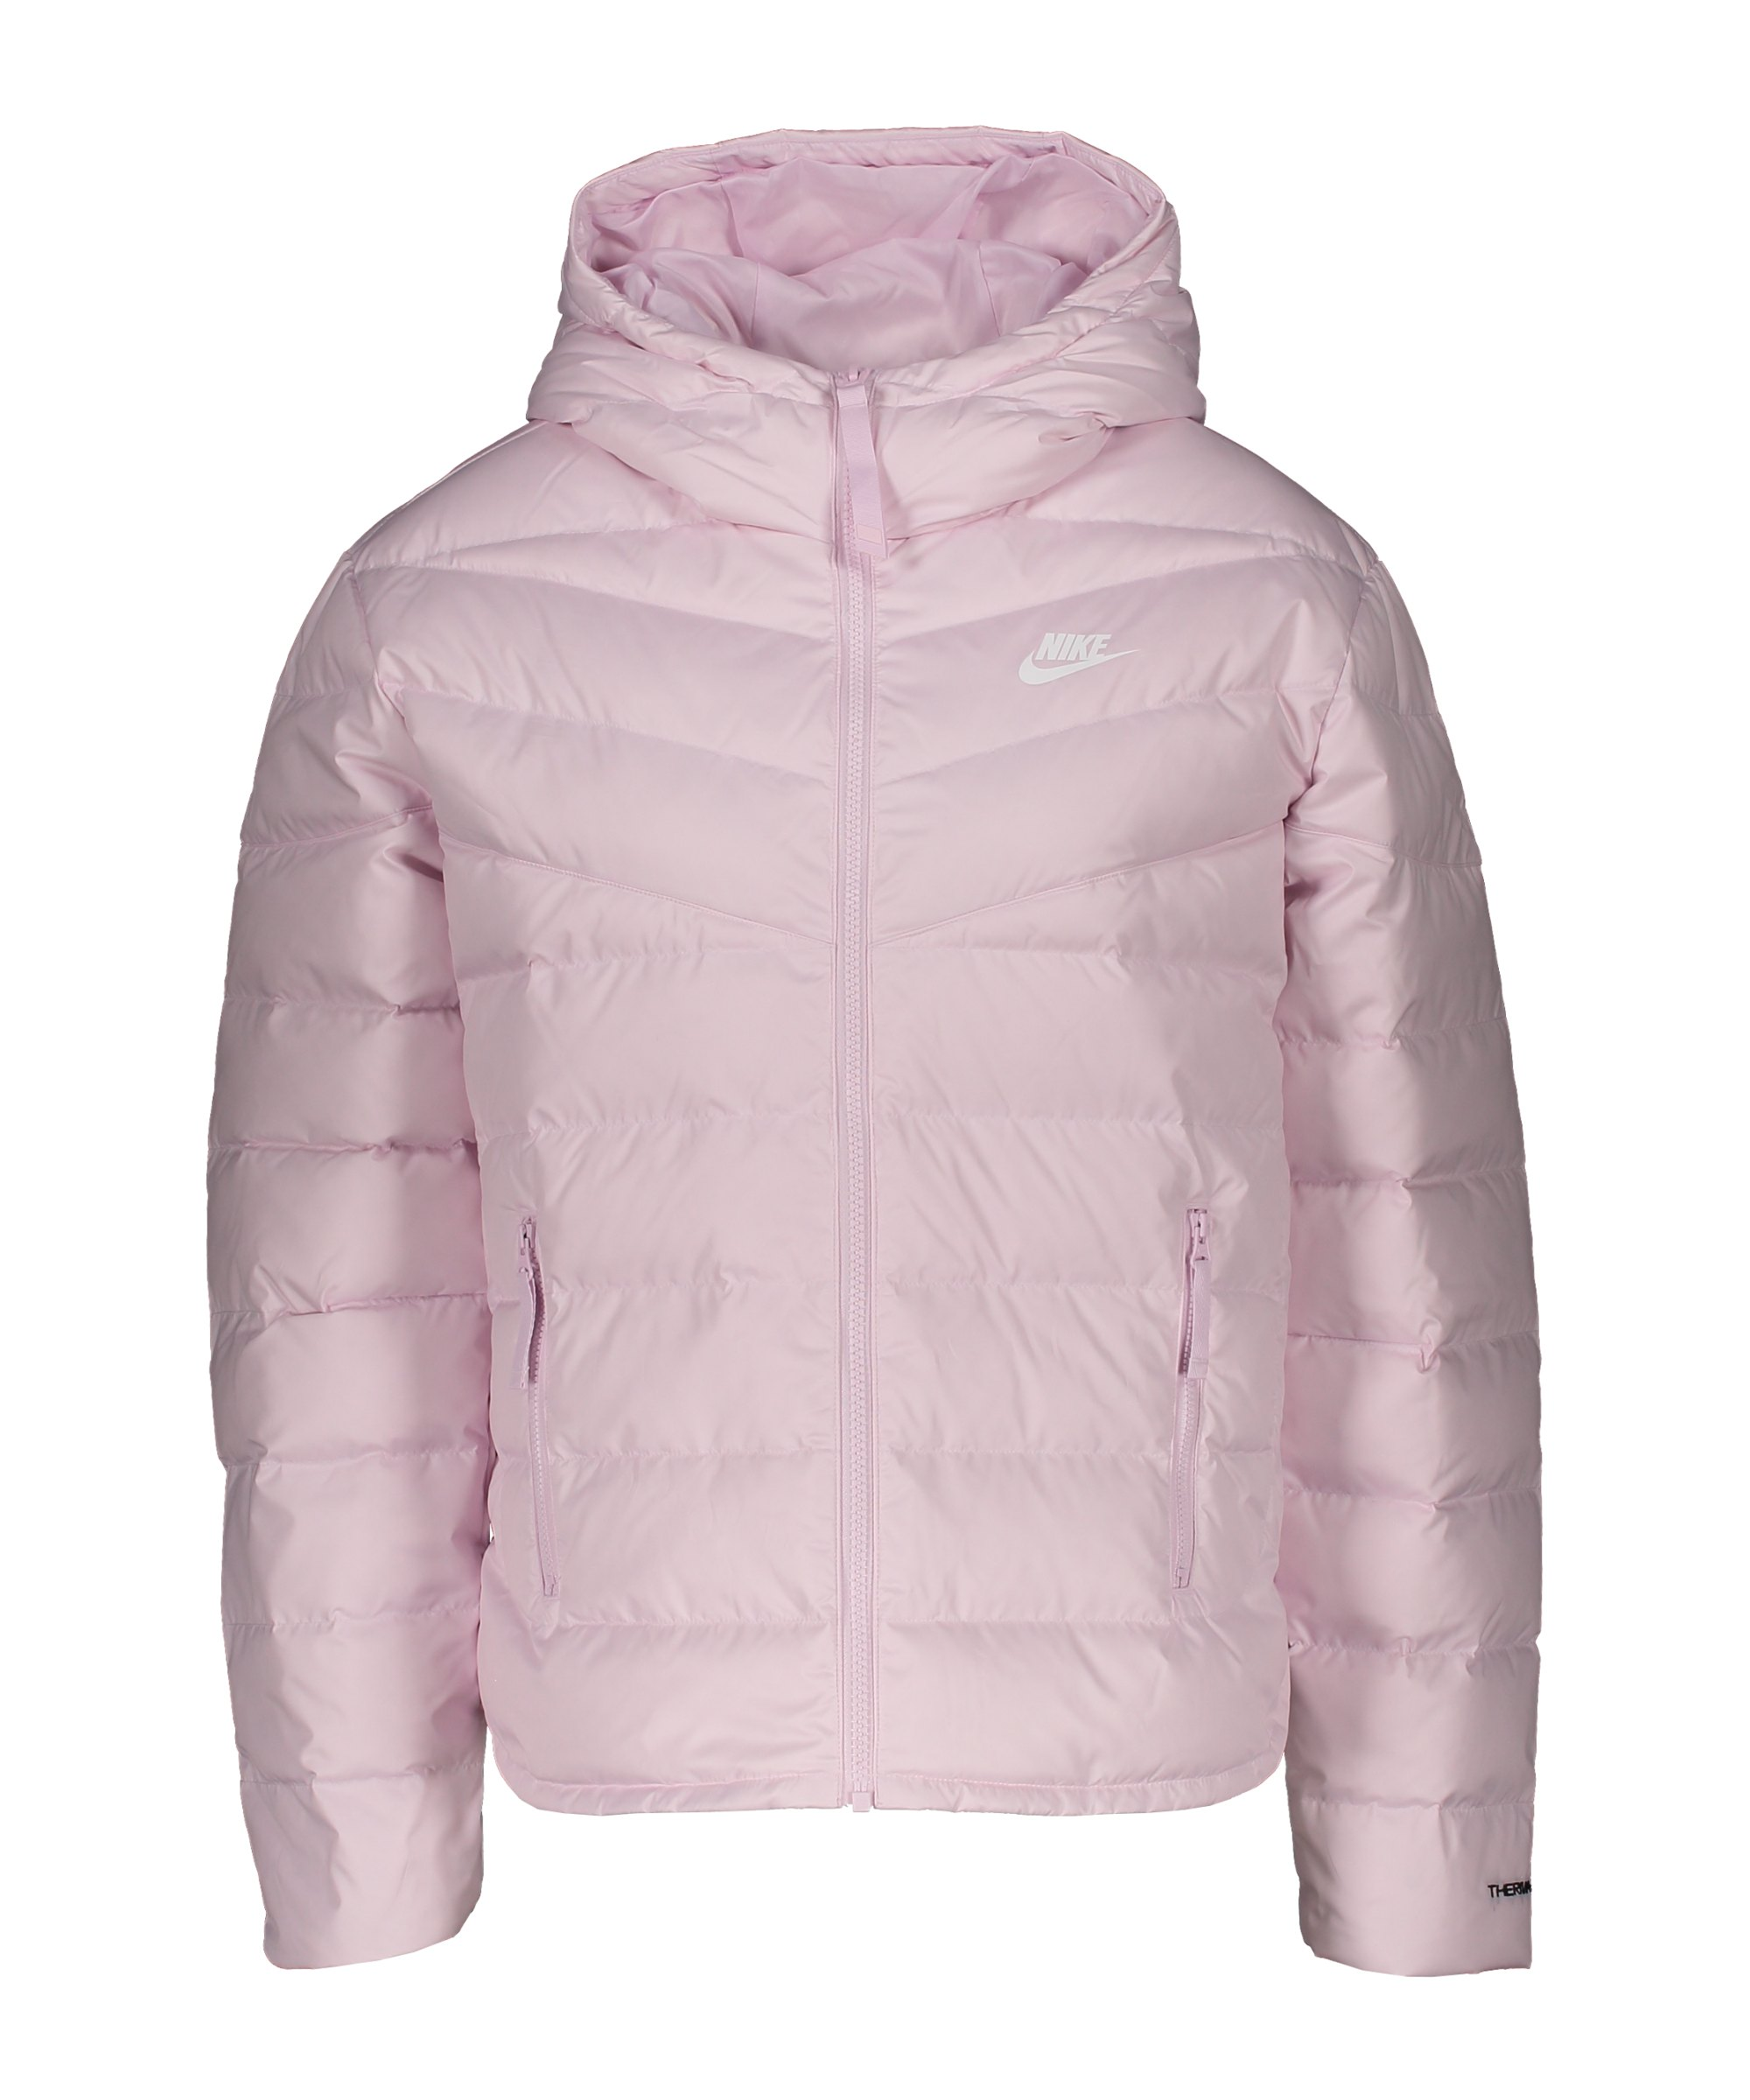 Nike Therma-FIT Windrunner Damen Pink F695 - pink